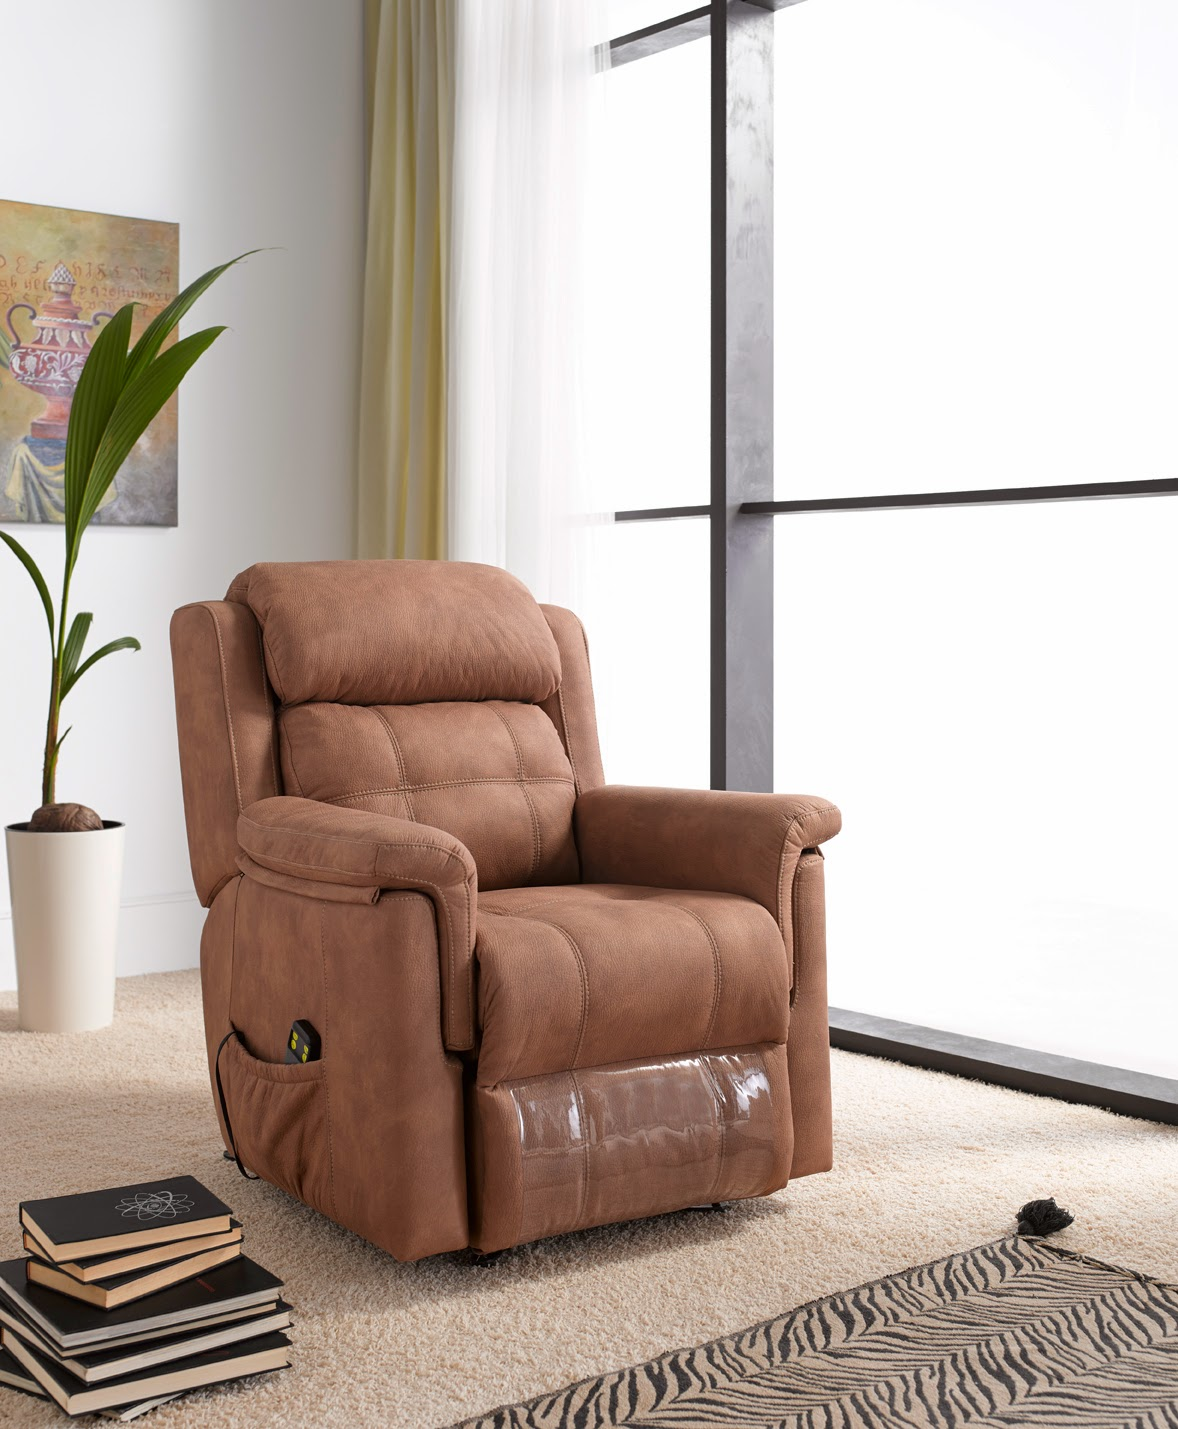 SILLON RELAX 2 MOTORS POWER LIFT